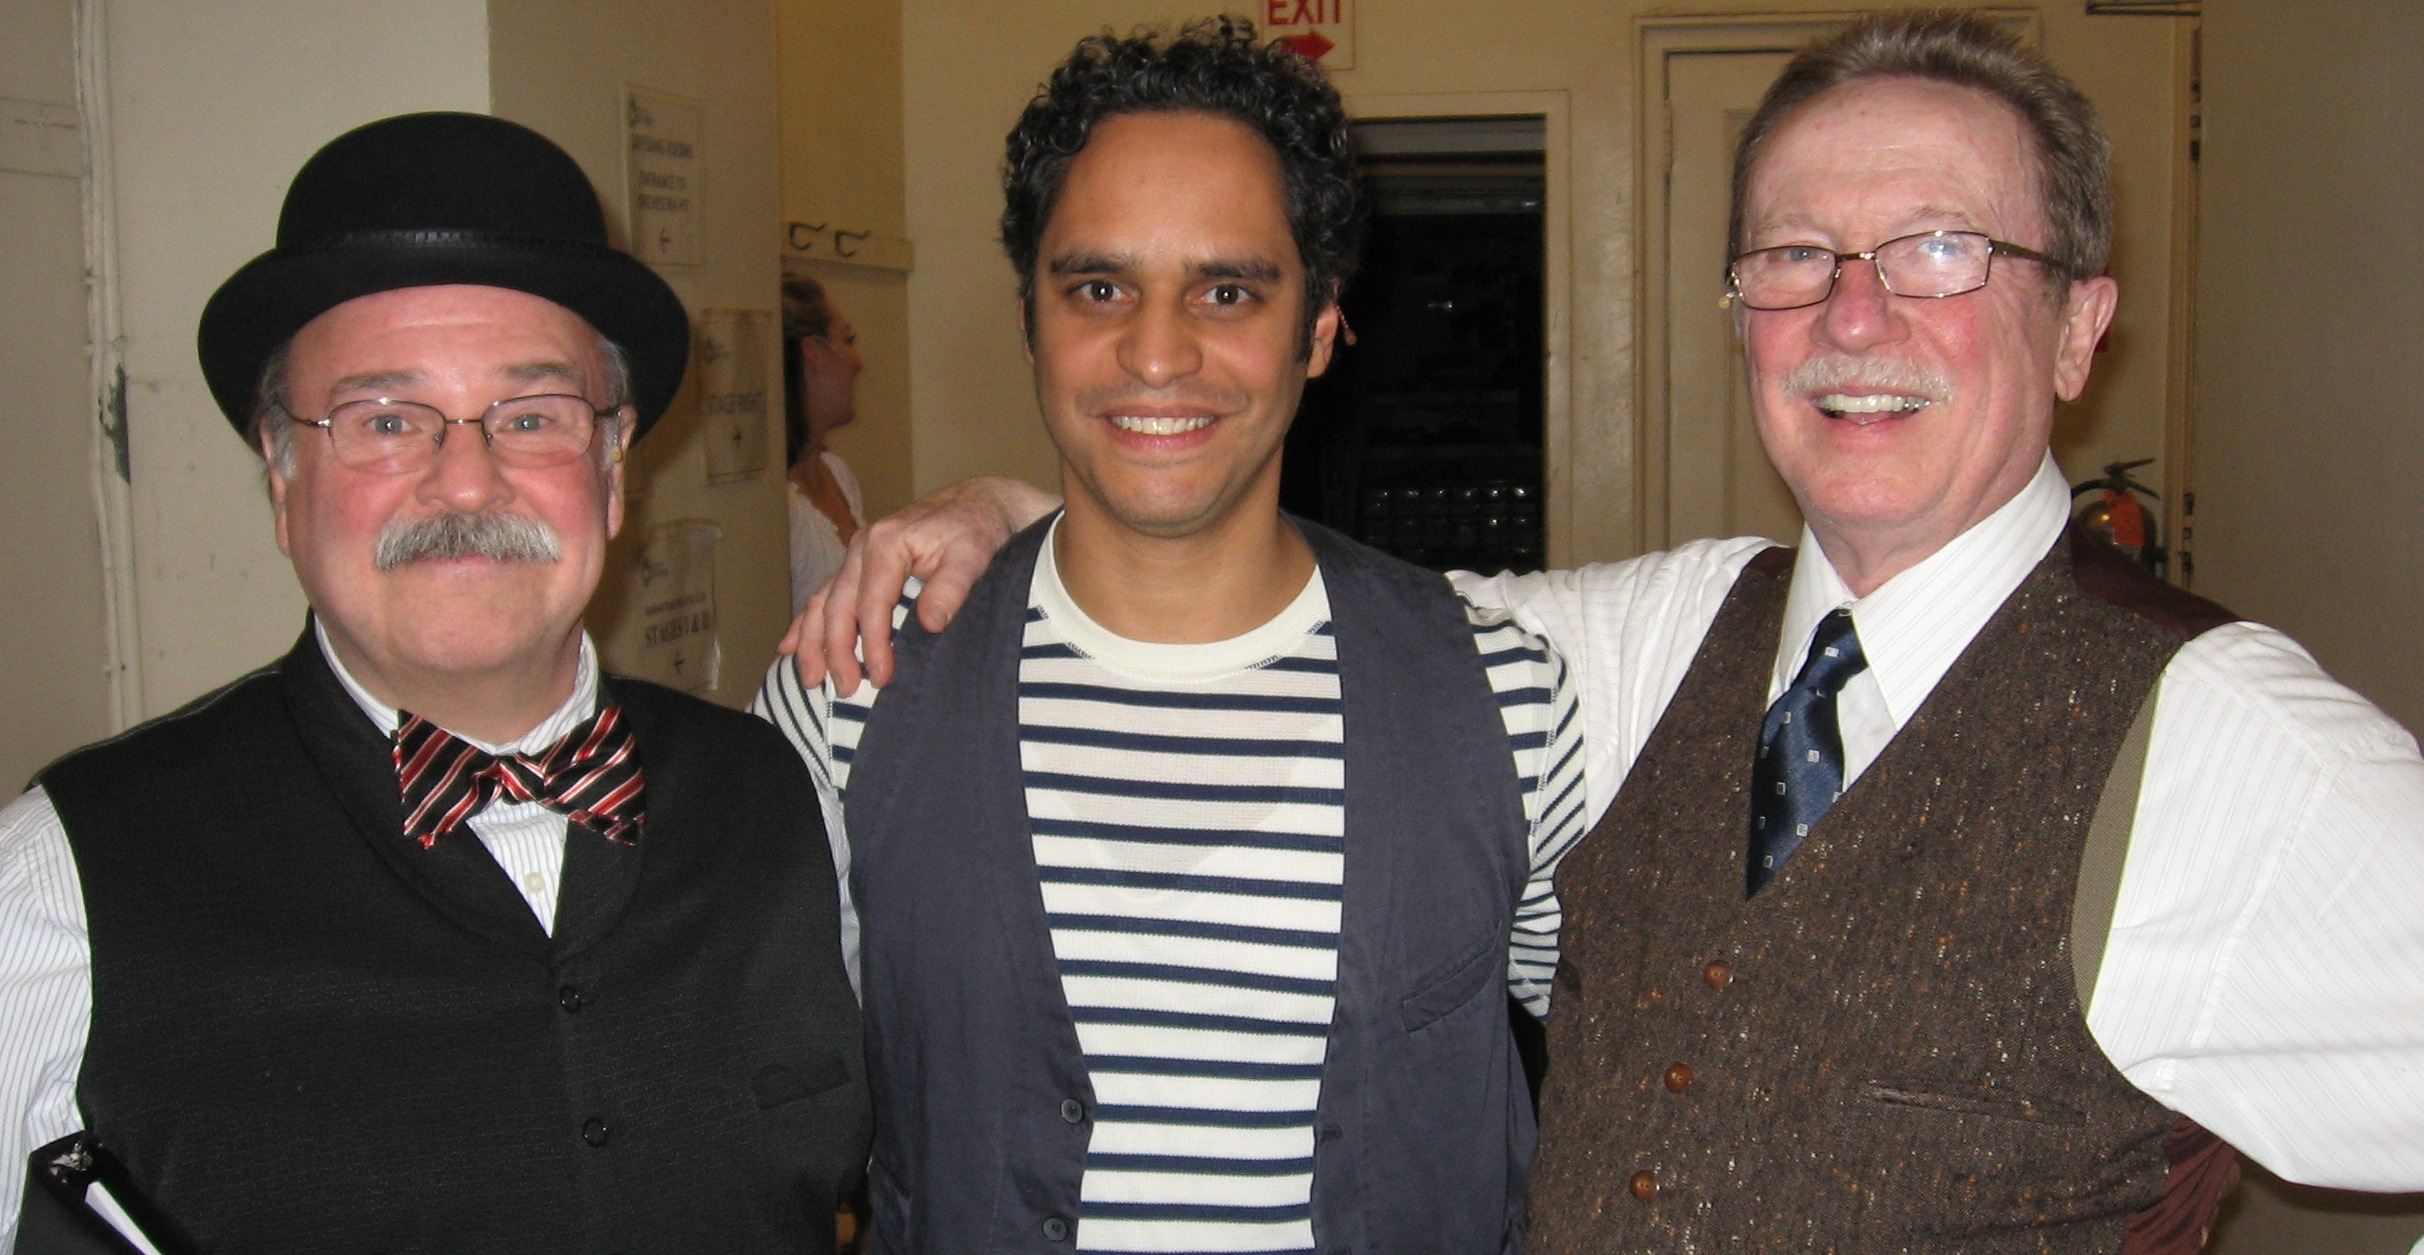 With Fred Applegate and George Hearn